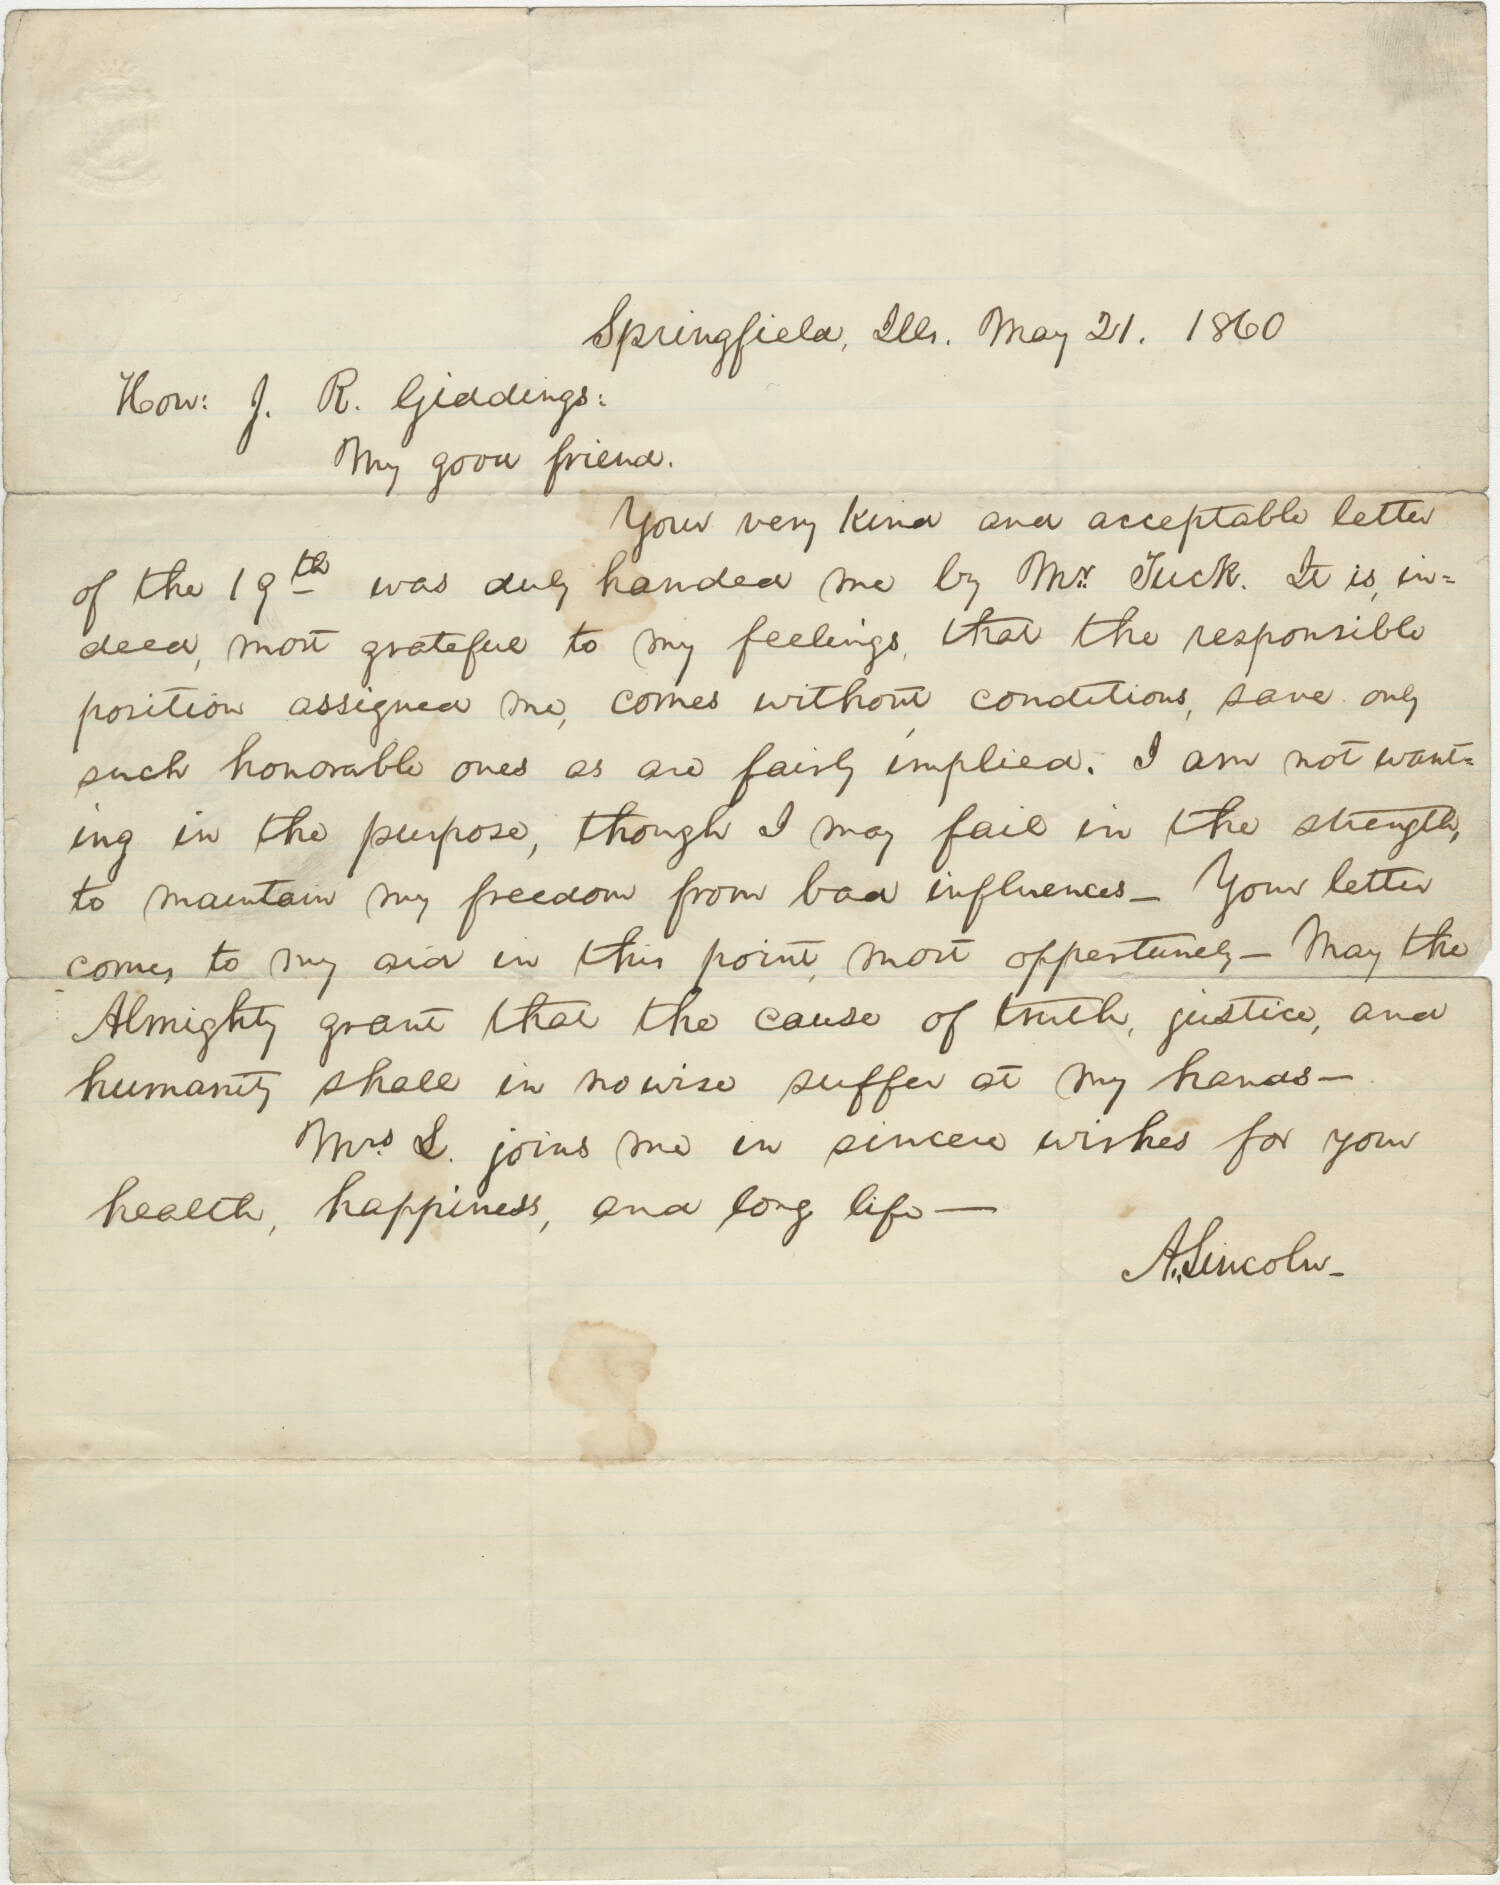 """Abraham Lincoln's Prayer To """"The Almighty"""" For Himself And The Nation - A Singular Letter"""